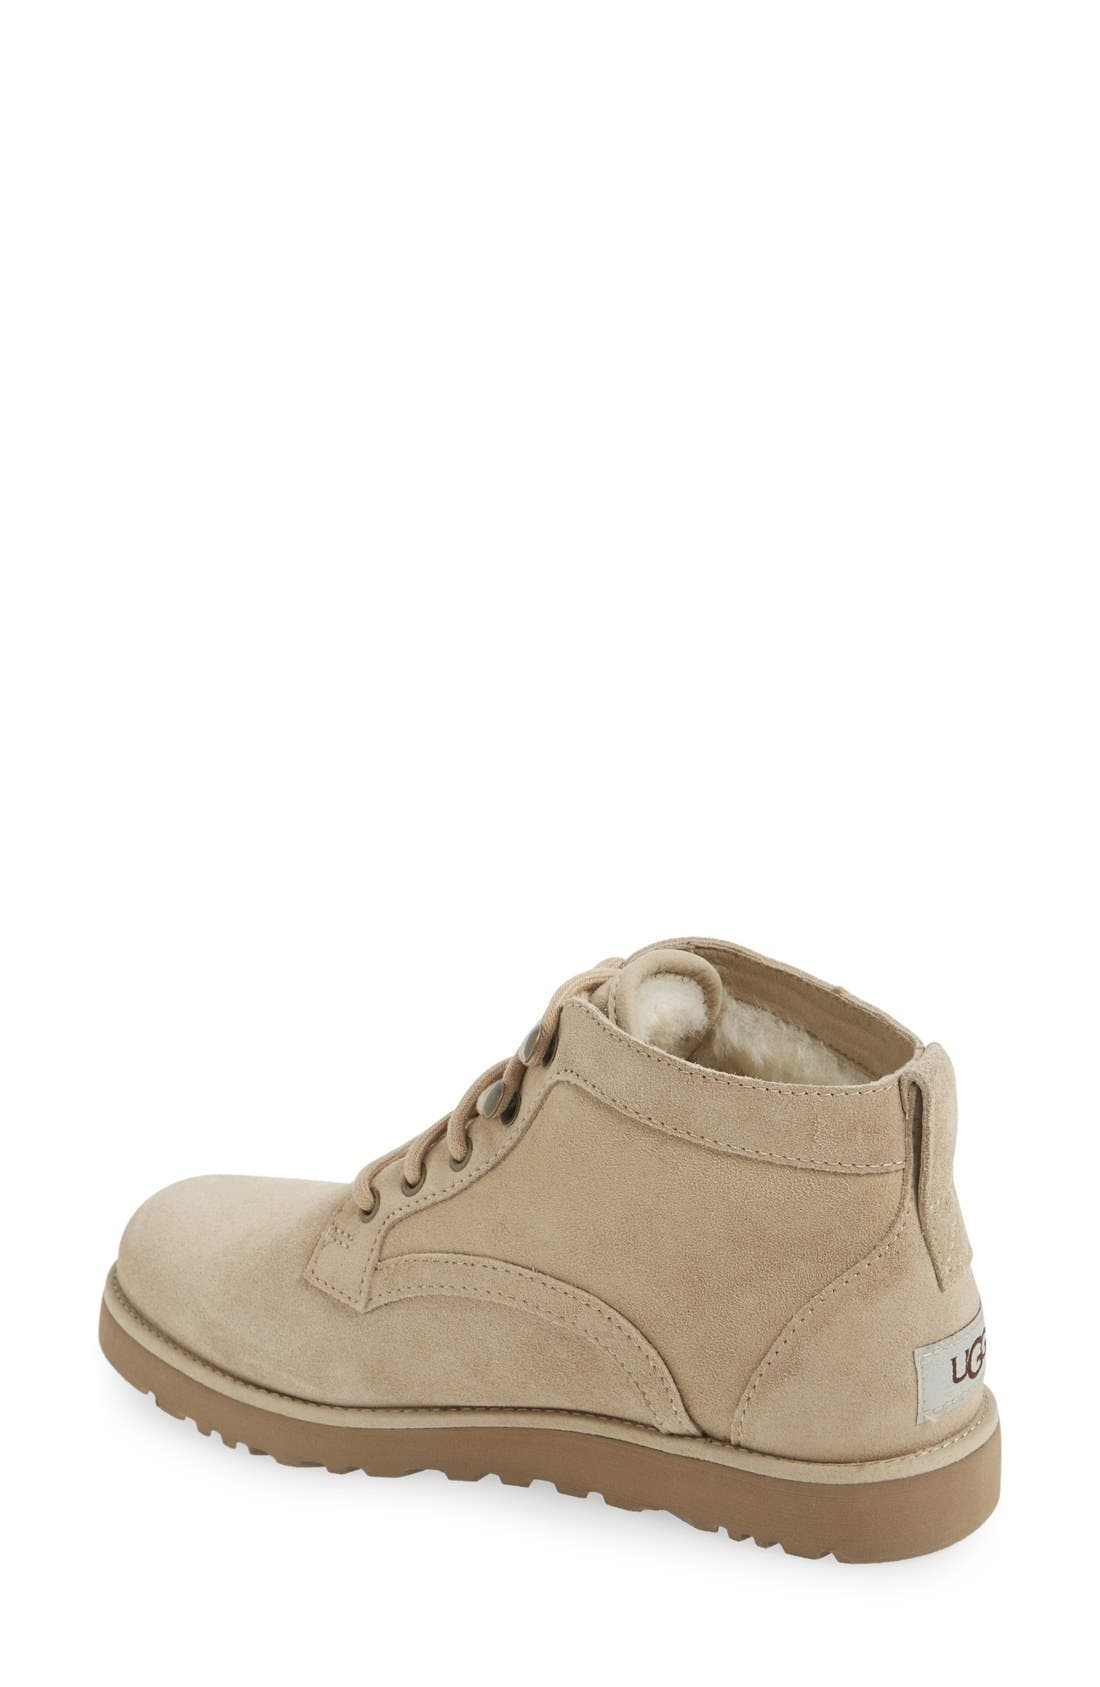 ,                             Bethany - Classic Slim<sup>™</sup> Water Resistant Chukka Boot,                             Alternate thumbnail 30, color,                             251